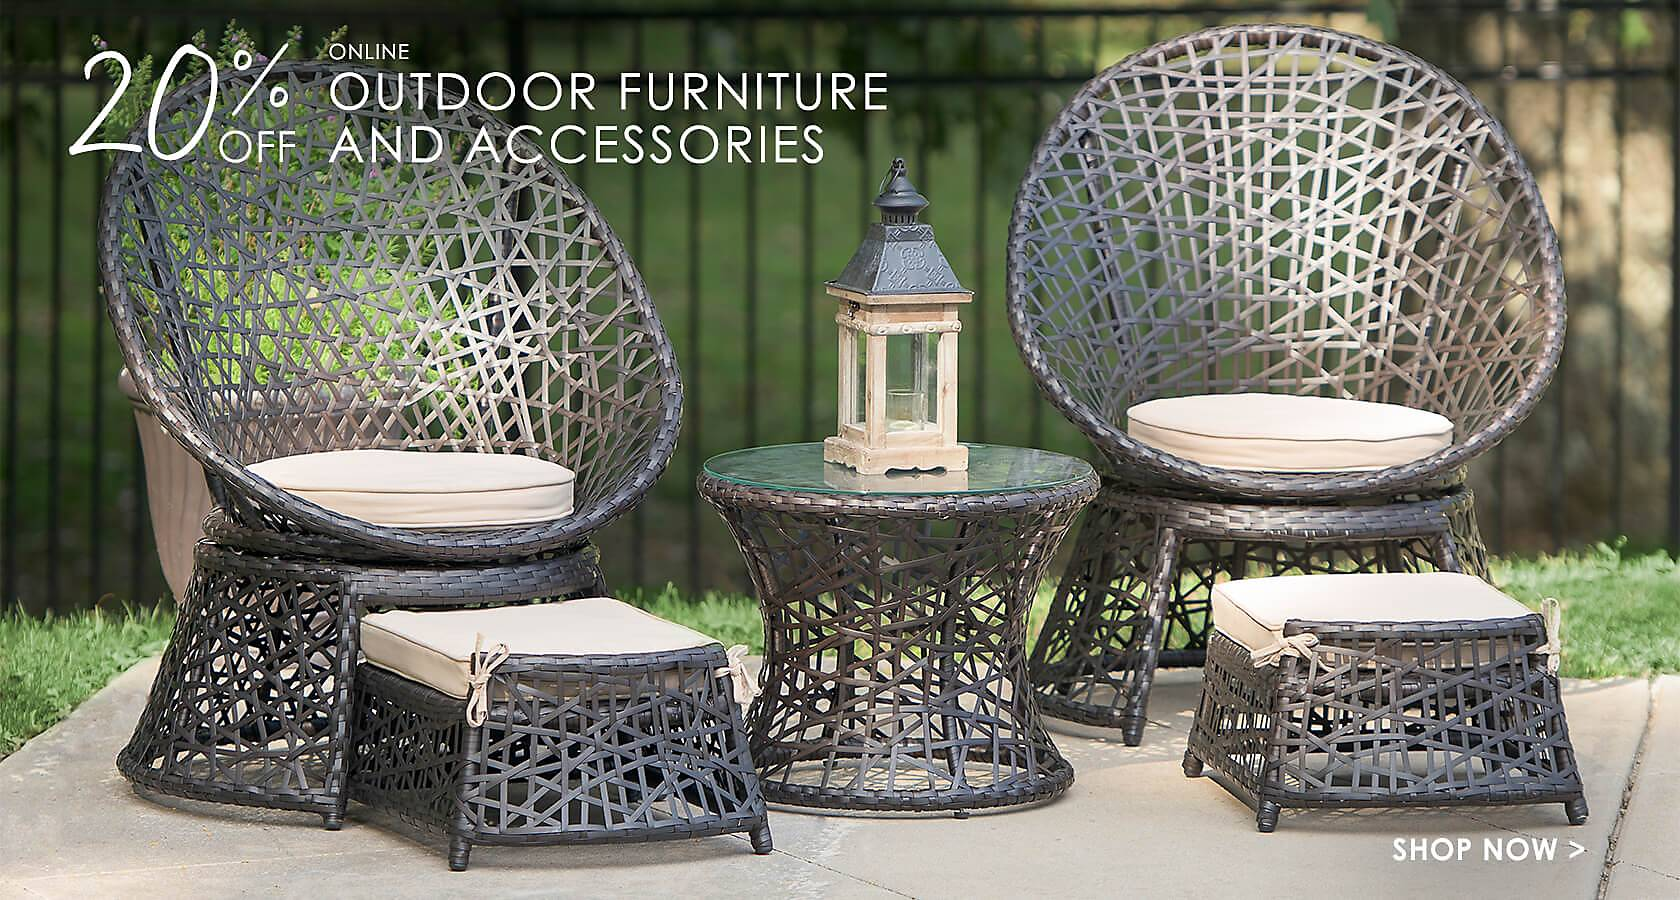 20% Off Online Outdoor Furniture and Accessories - Shop Now